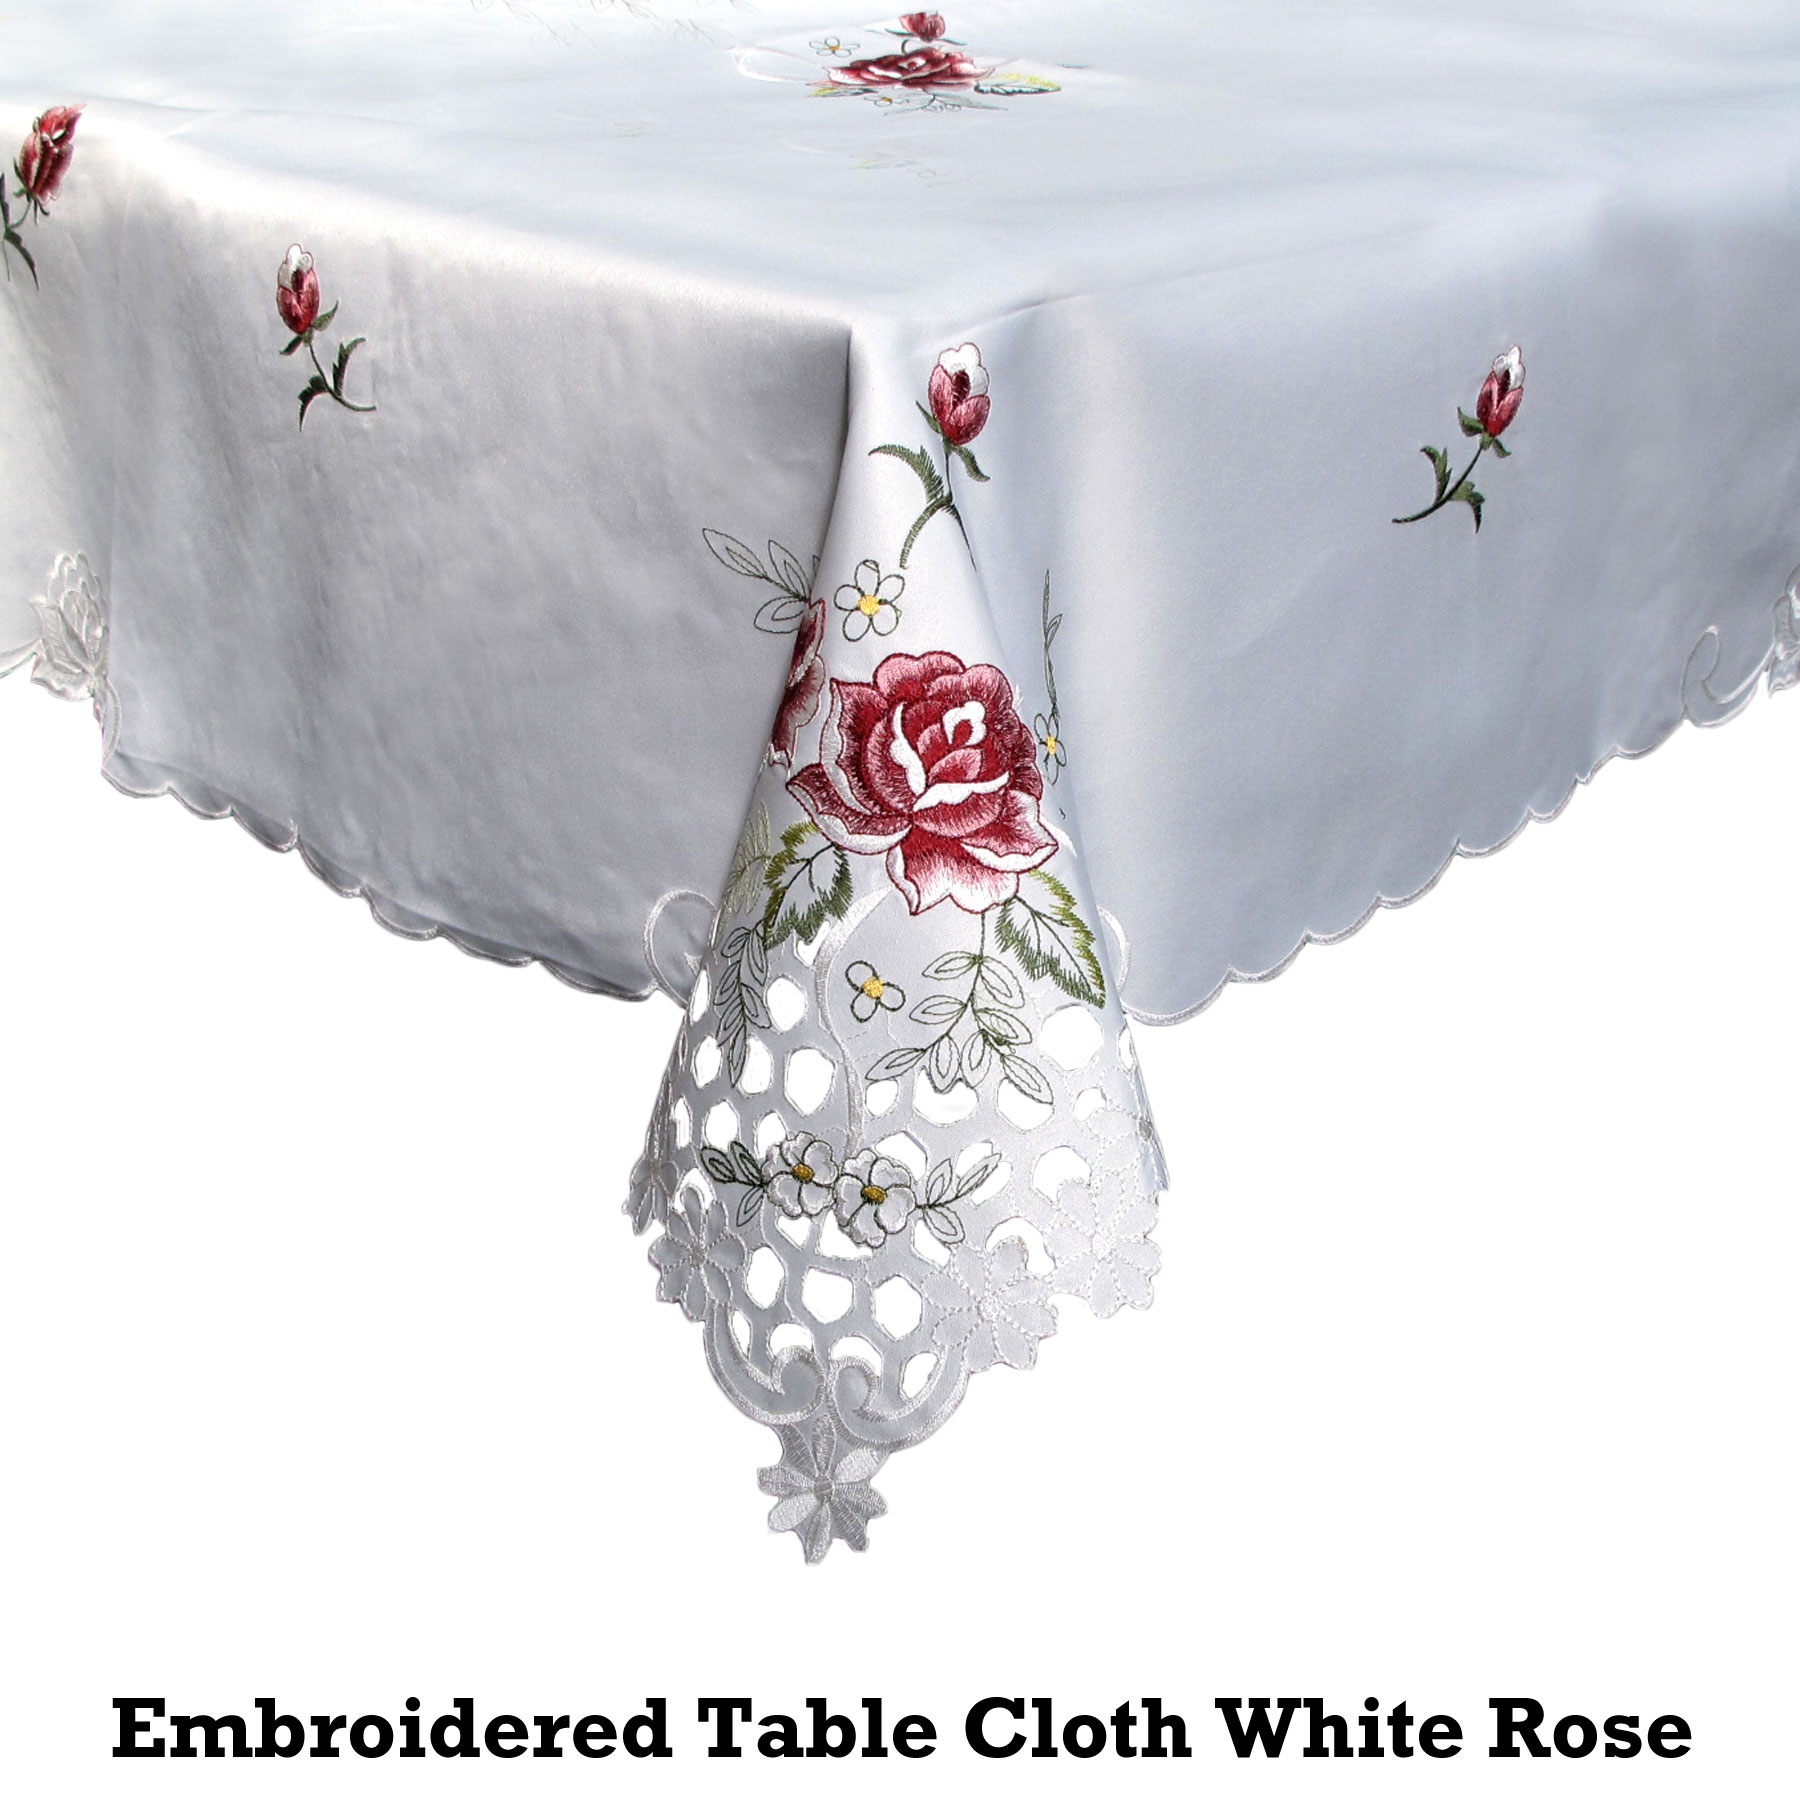 Embroidered table cloth white rose cutwork